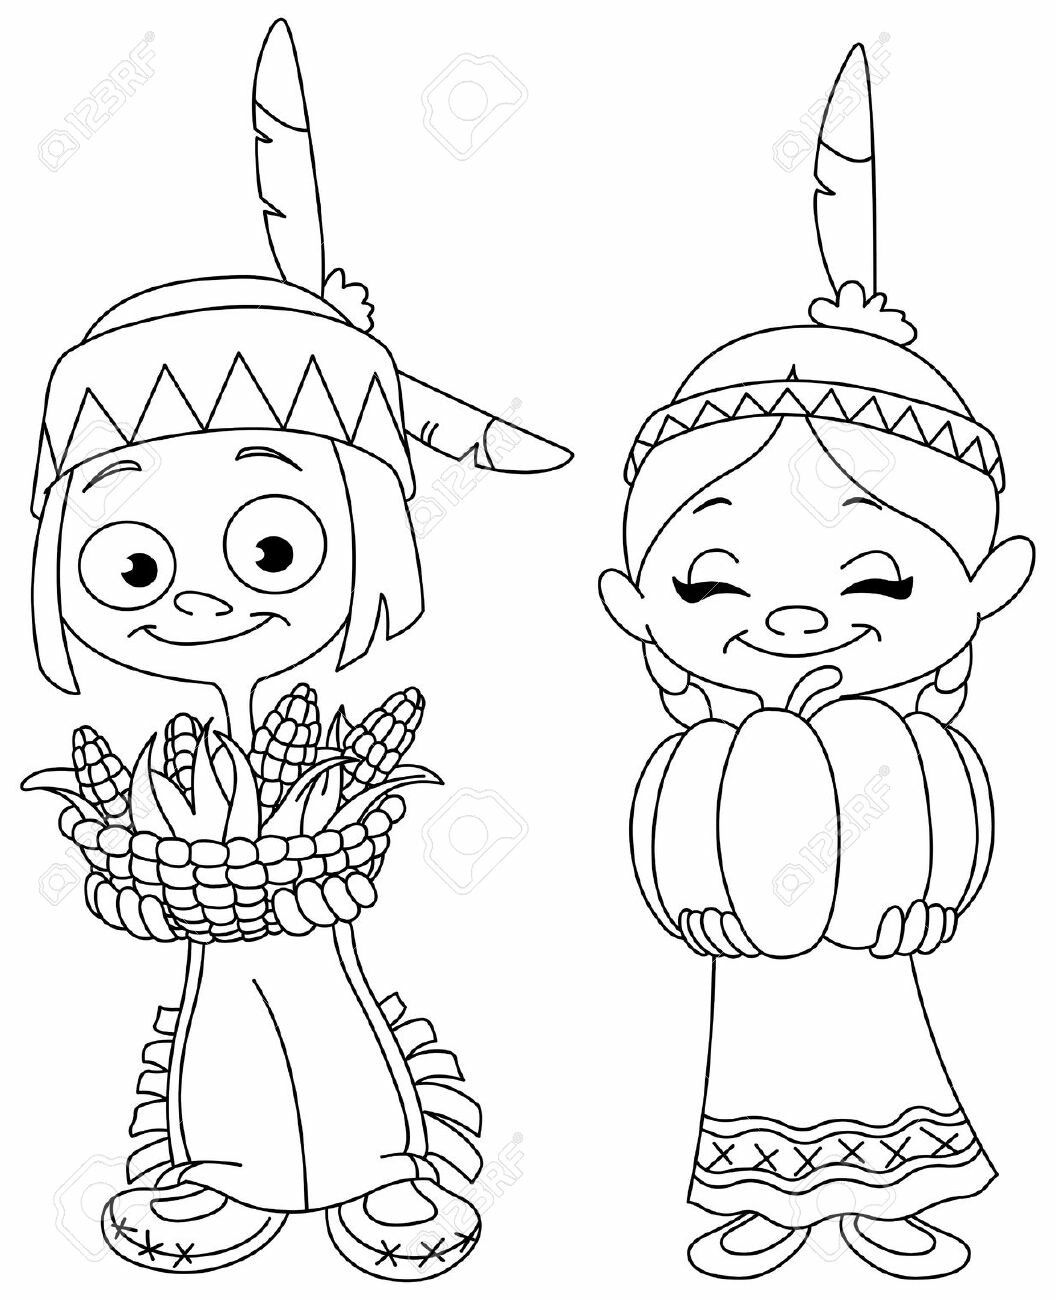 66 Indian Boy And Girl Coloring Pages Download Free Images